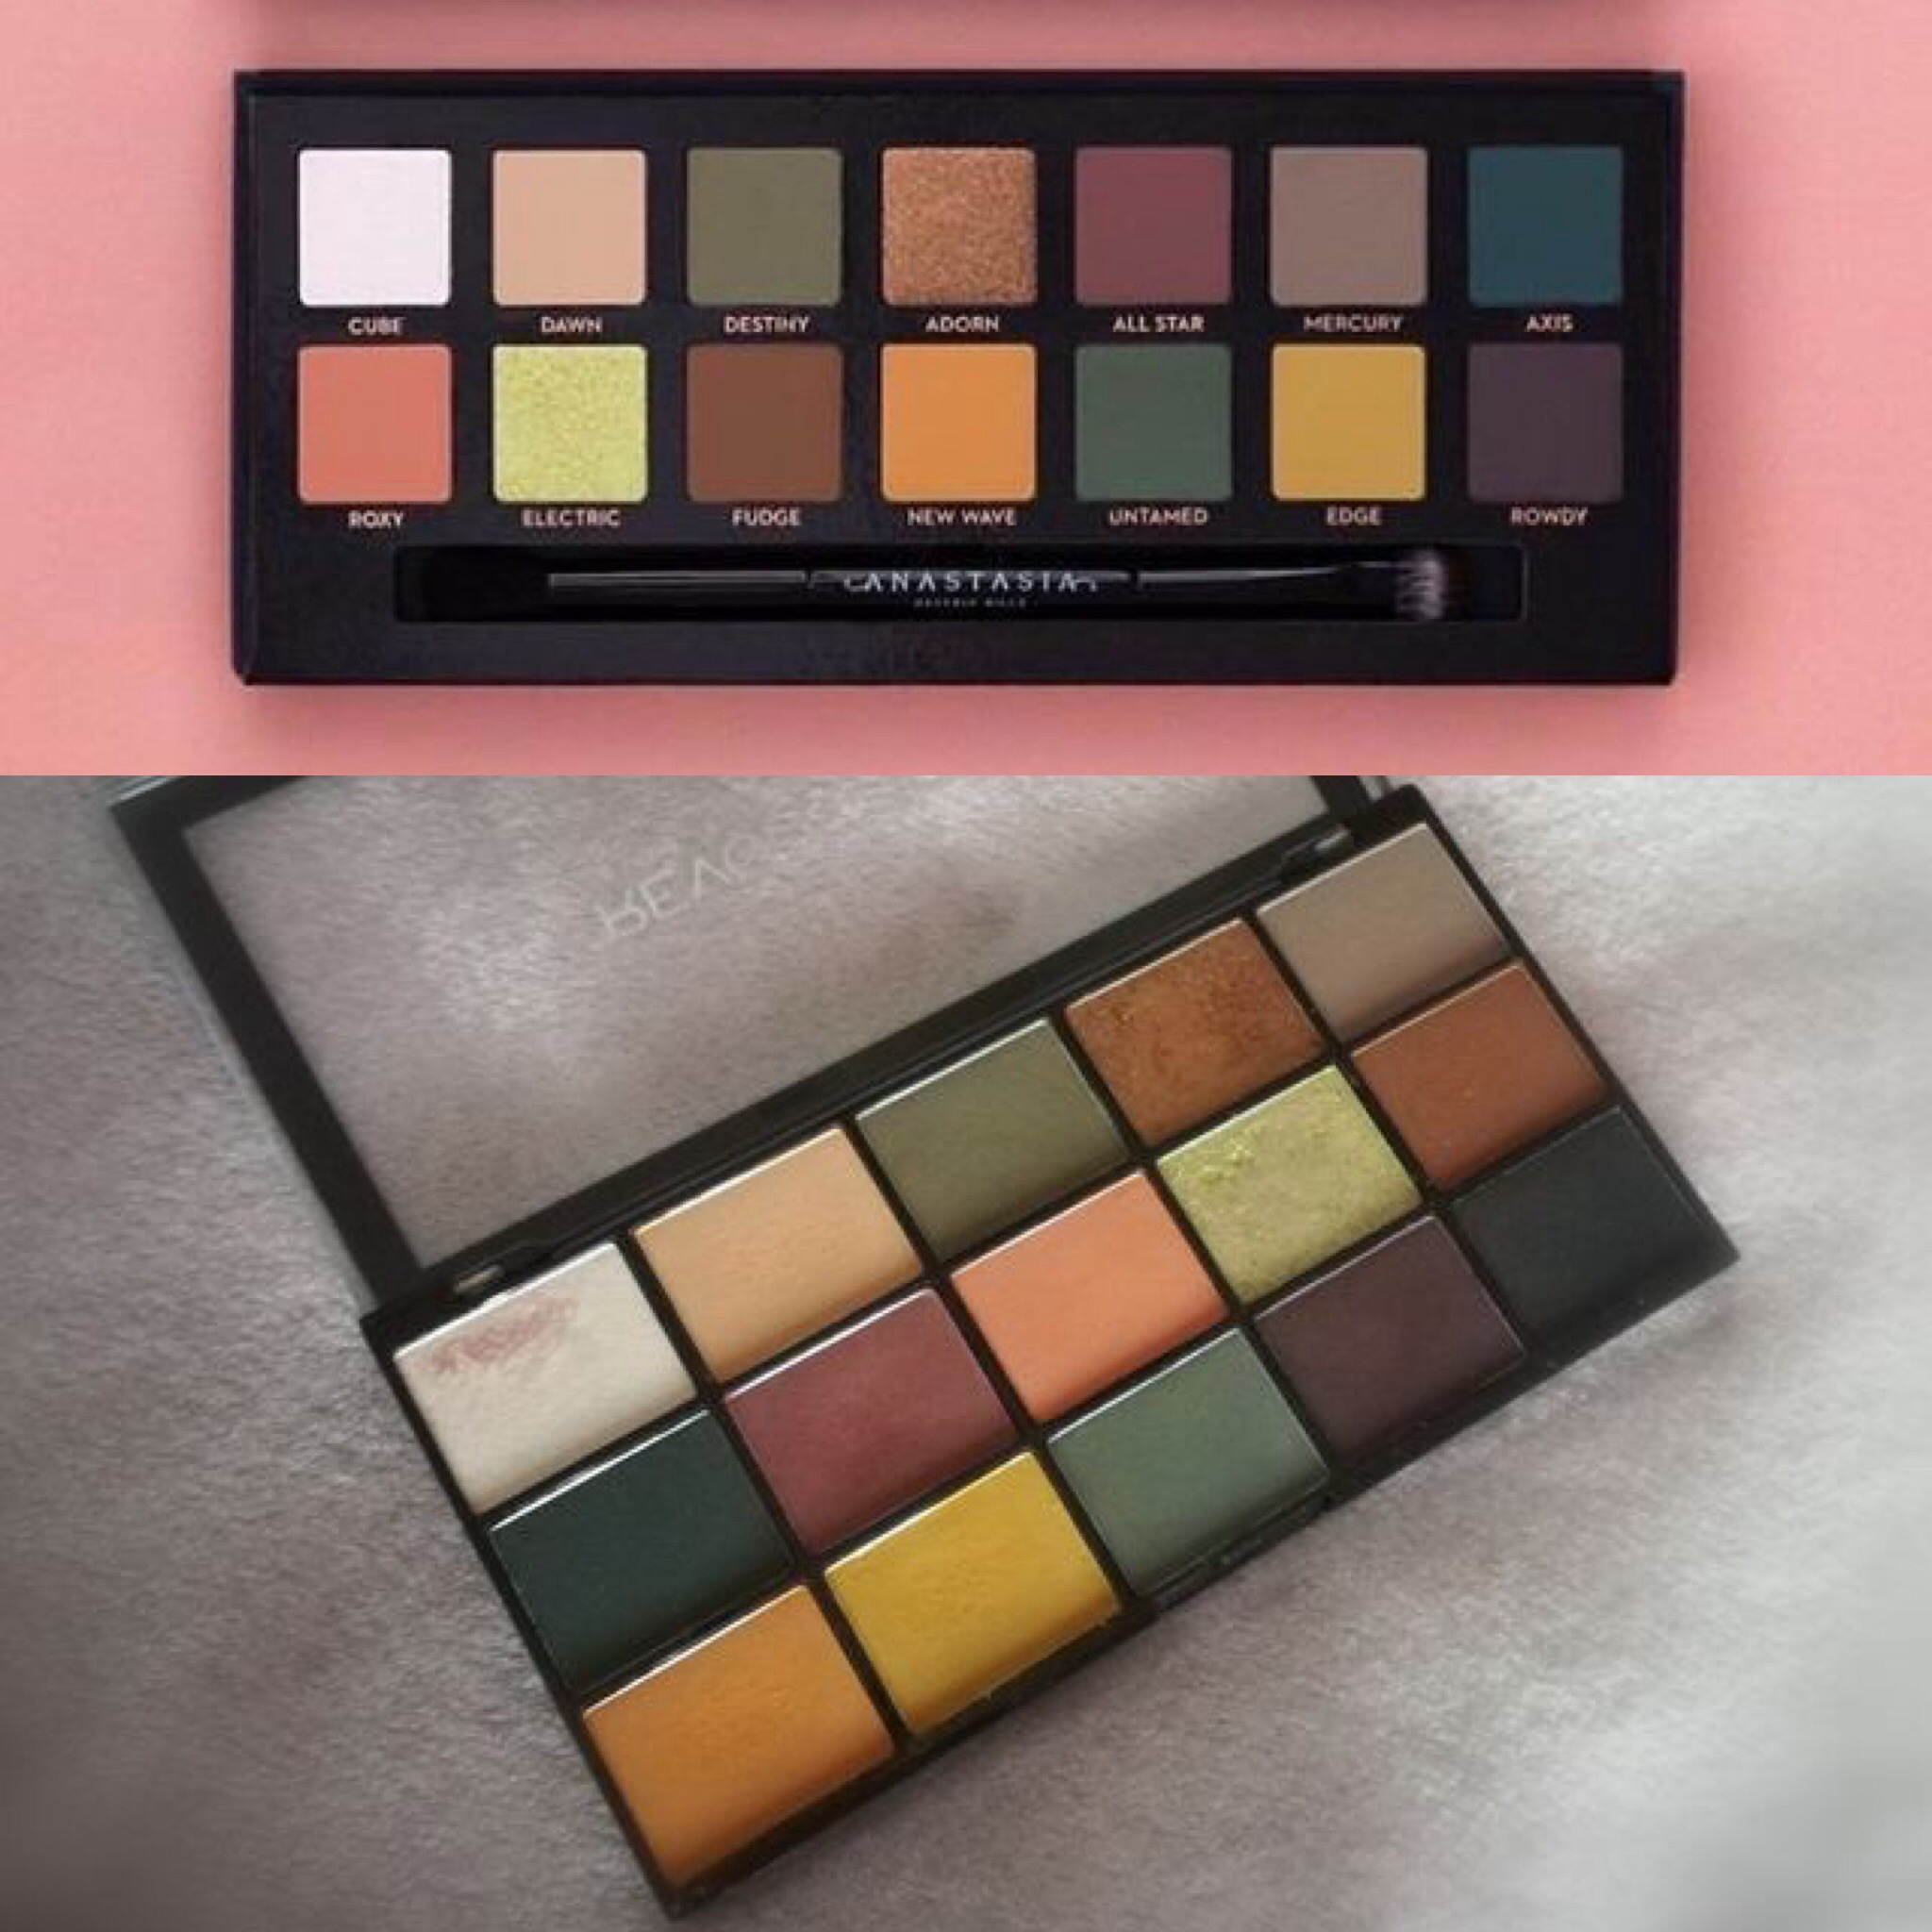 Dupe Alert: ABH Subculture vs MUR